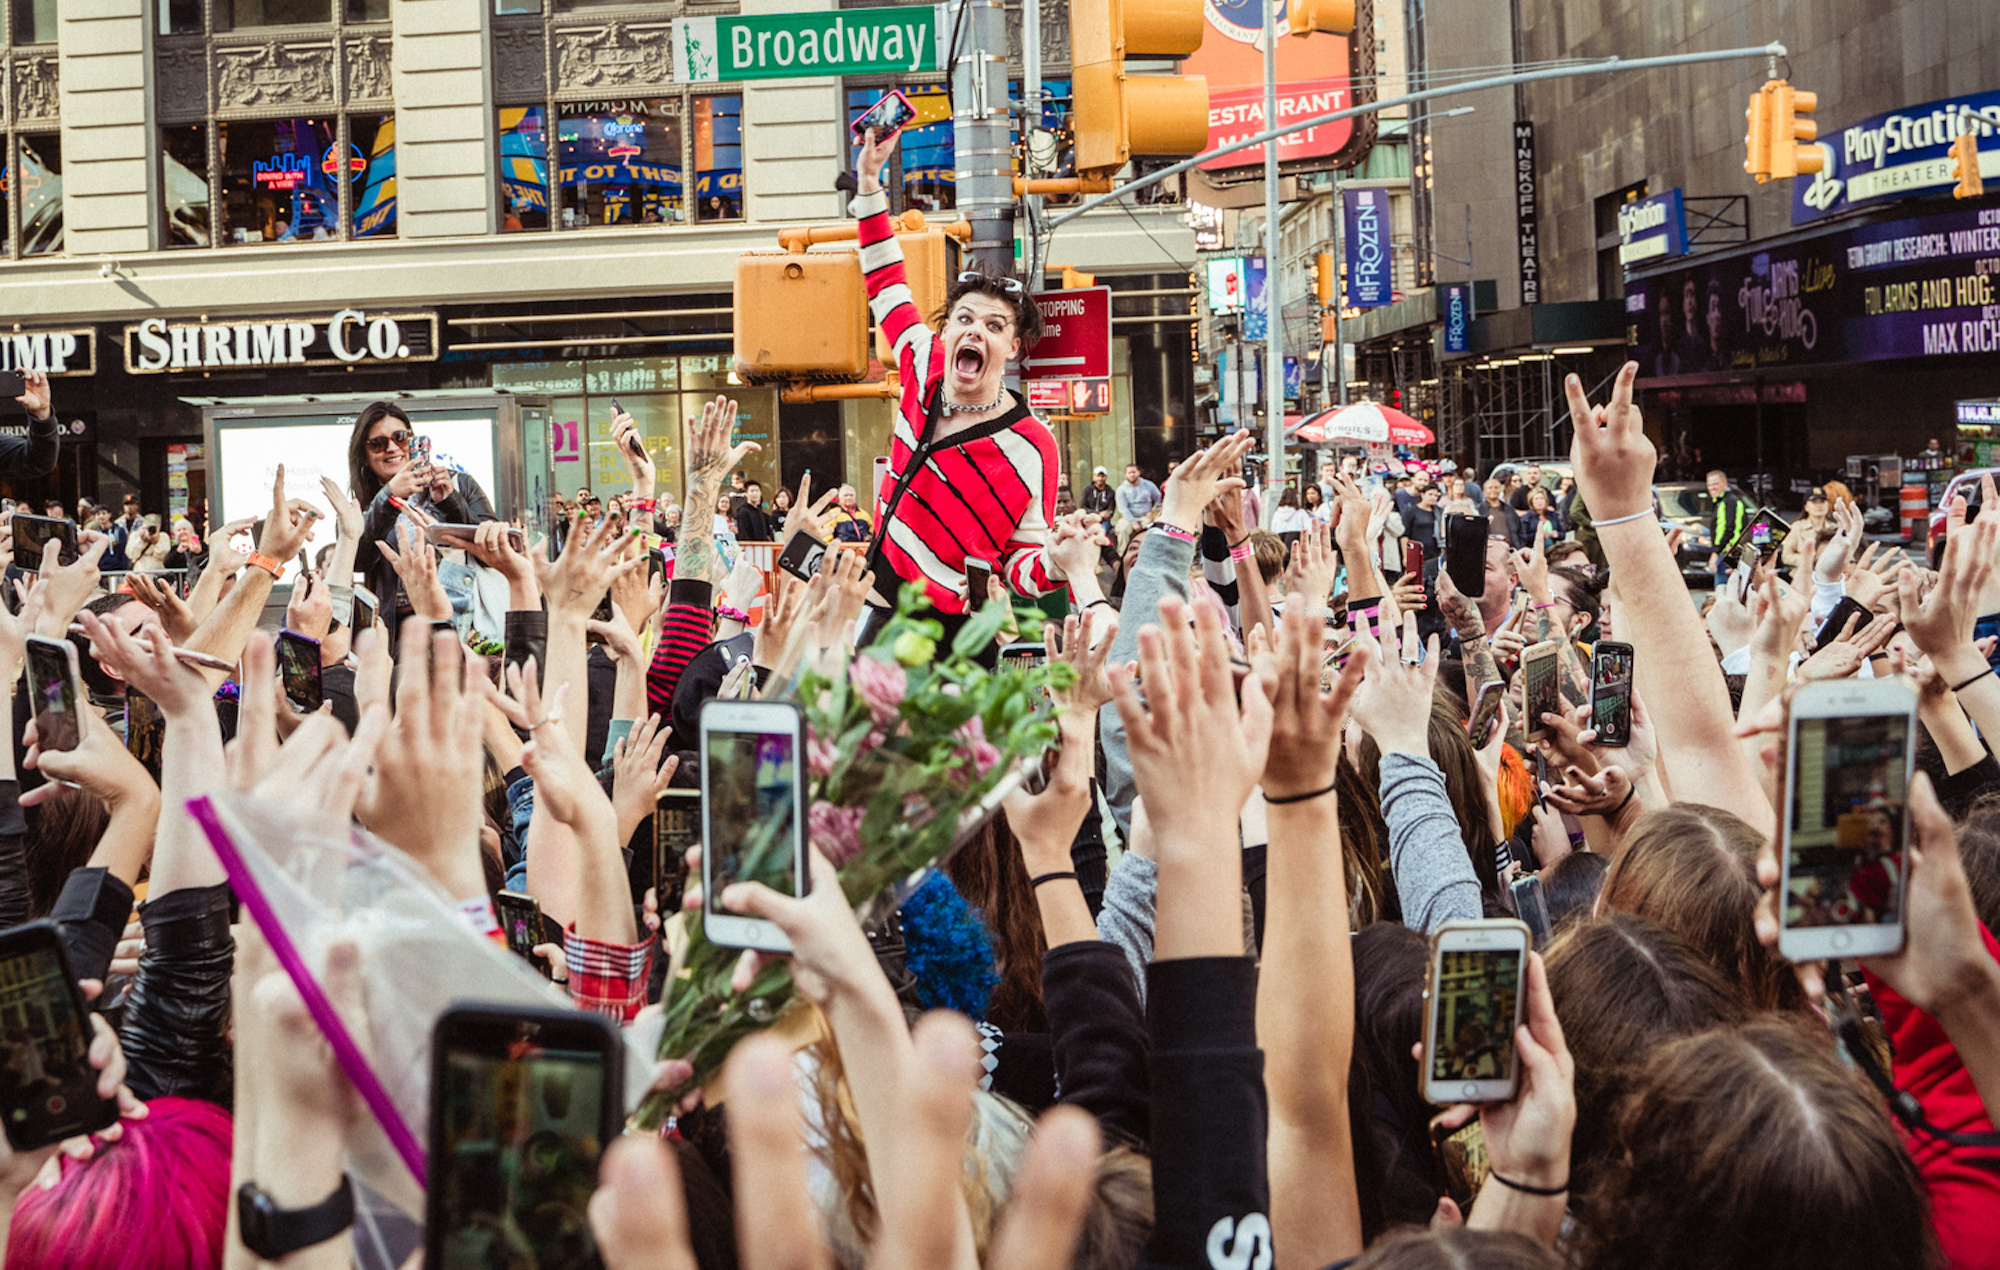 Yungblud premieres 'Original Me' video in New York's Times Square